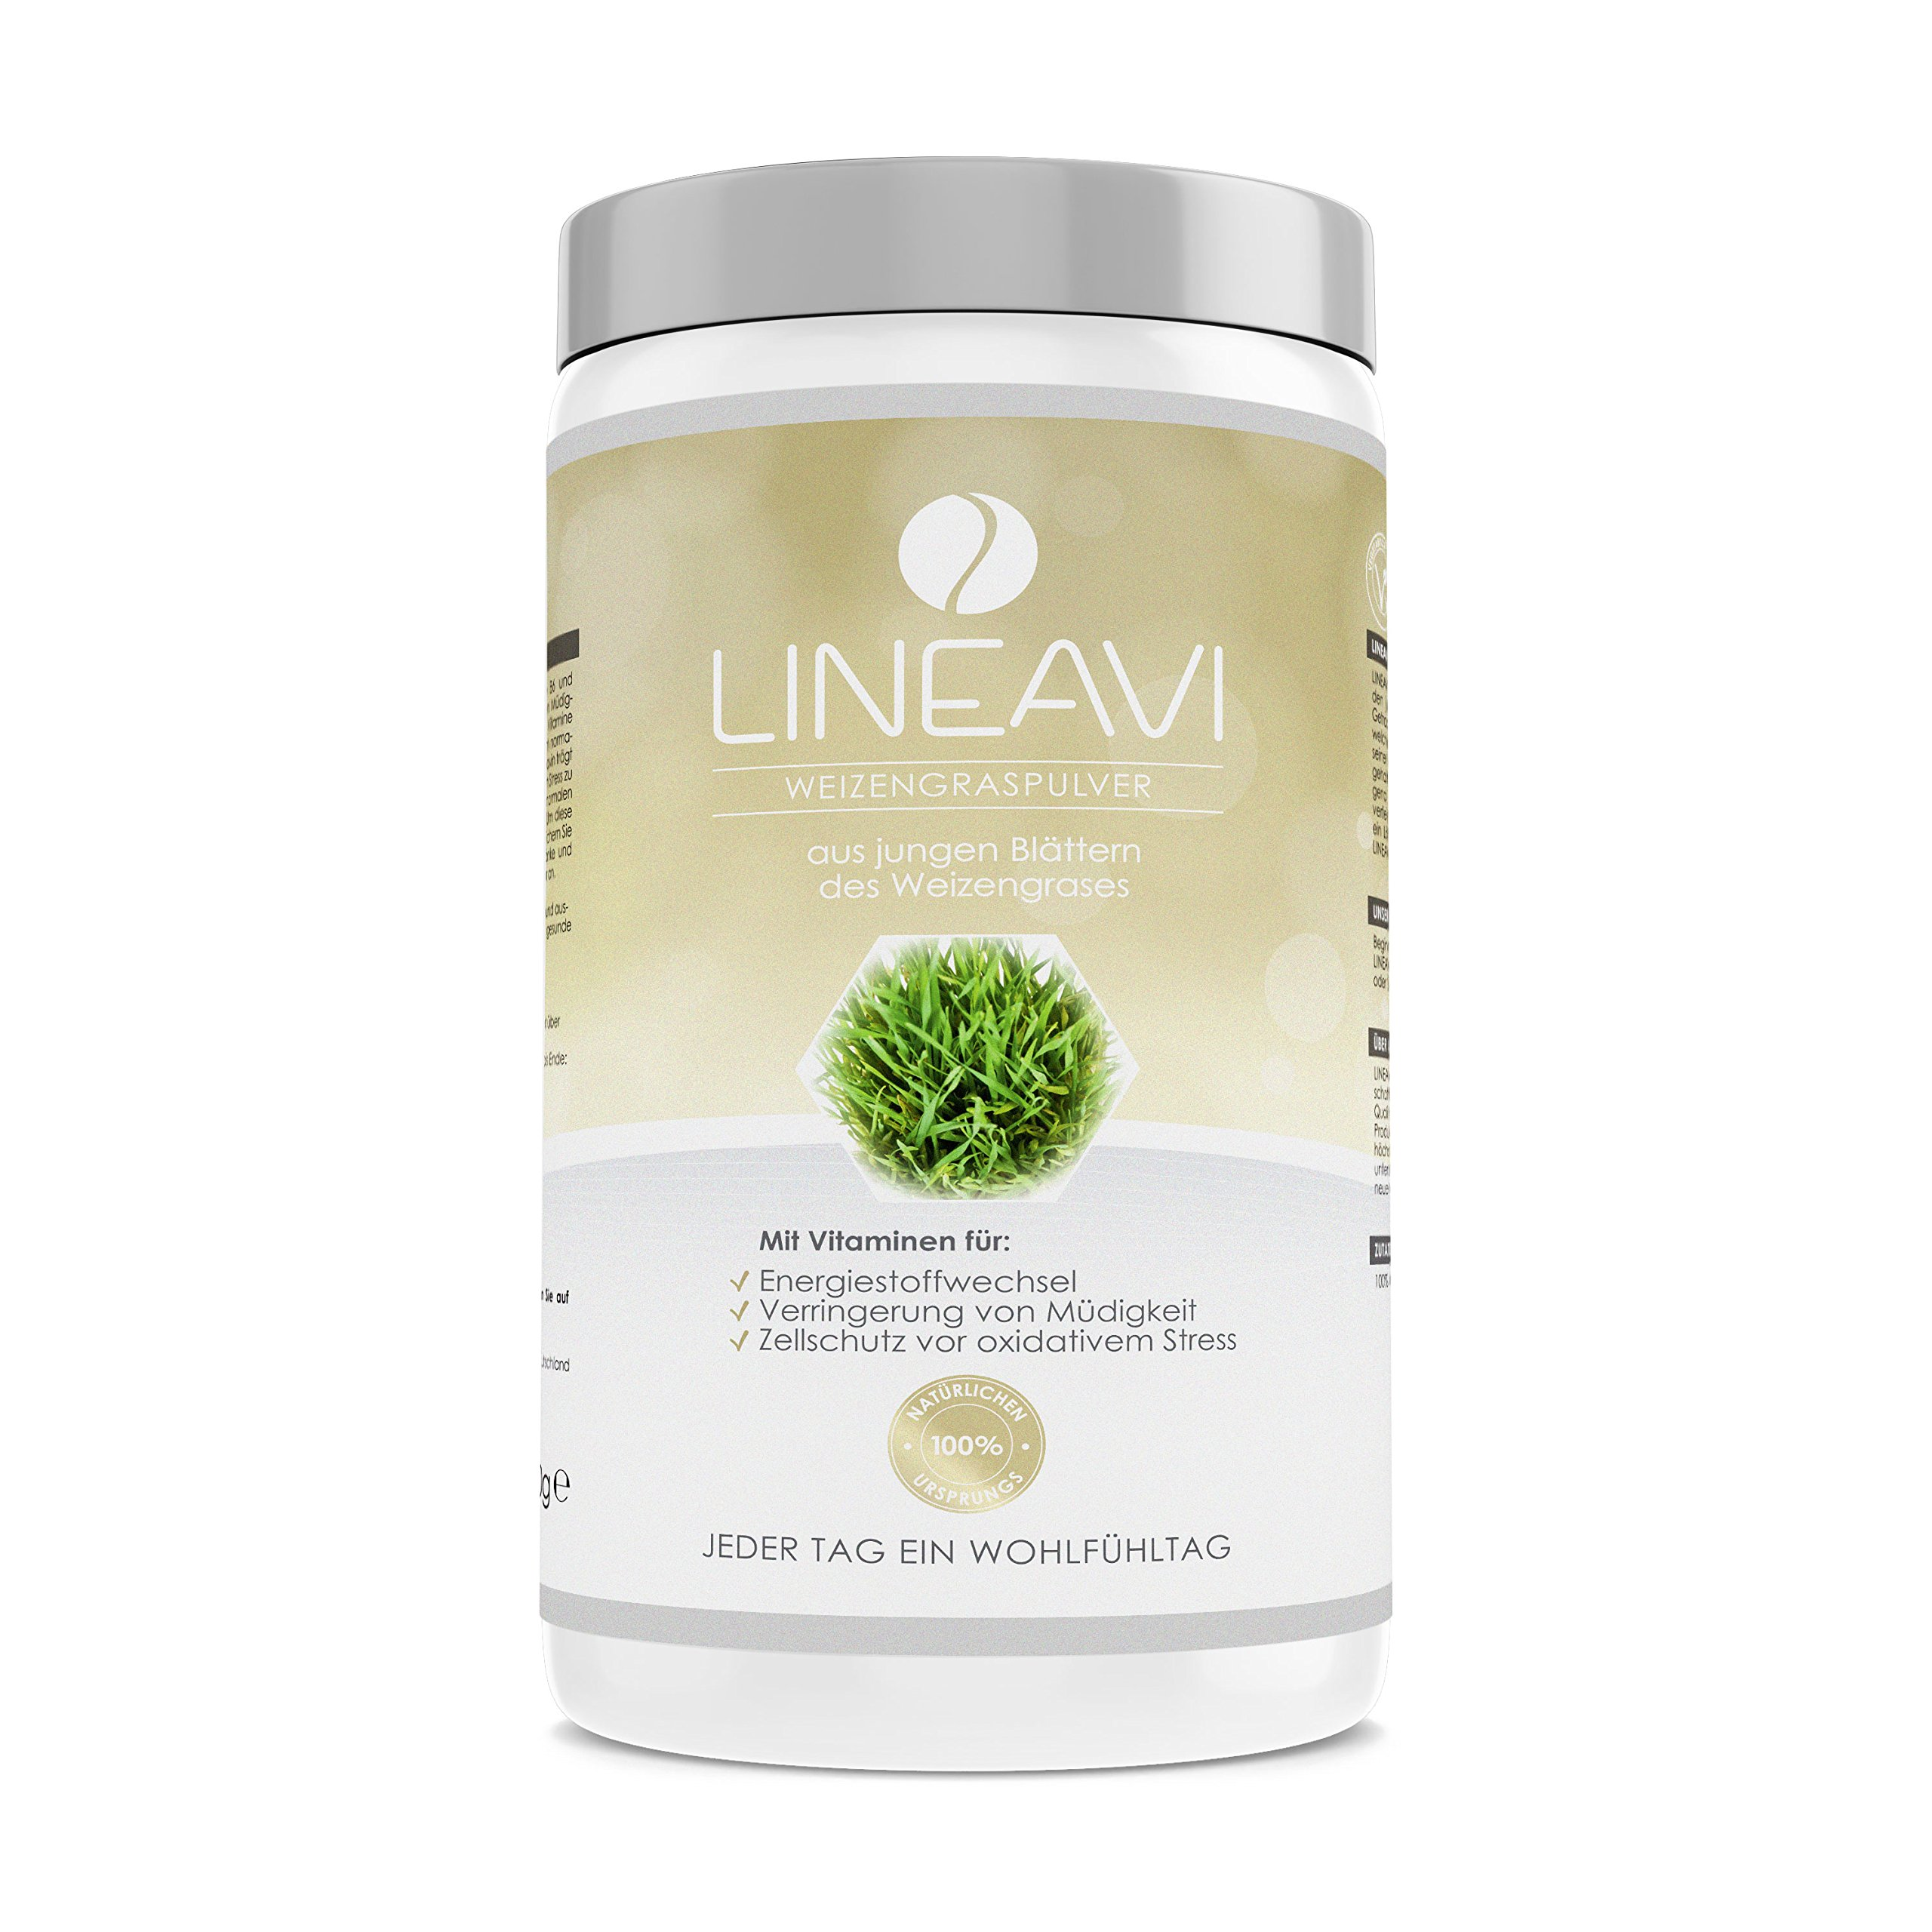 LINEAVI Wheatgrass Powder, Made from The Young Leaves of Wheatgrass, 100% Natural Origin, Ideal for Green Smoothies, Made in Germany, 400g product image